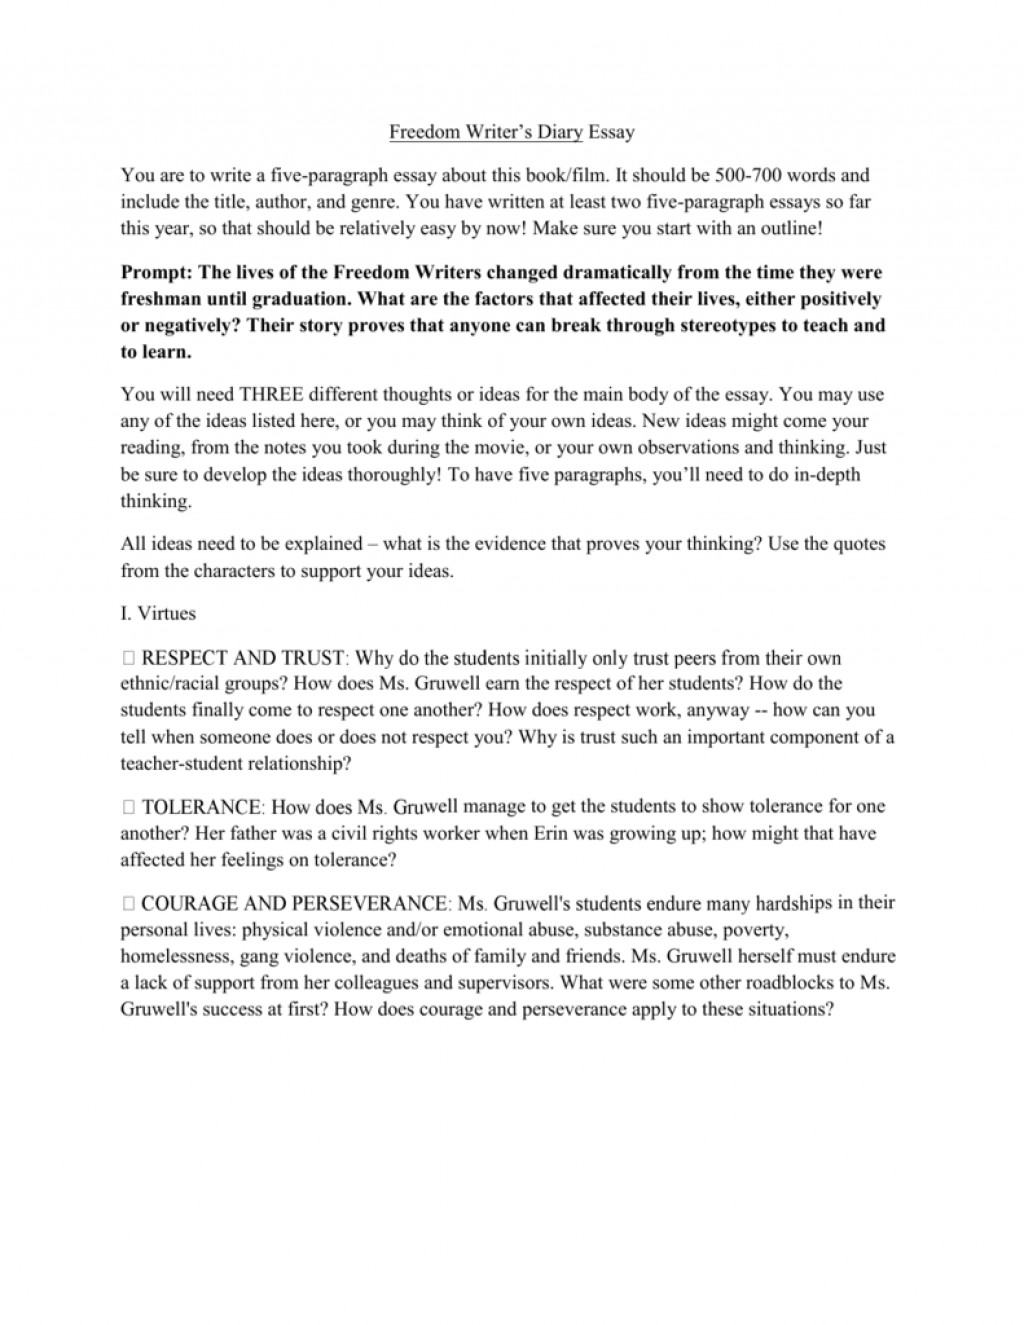 001 Essay Example About Freedom Writers 008589673 1 Striking Questions For Movie Narrative Large